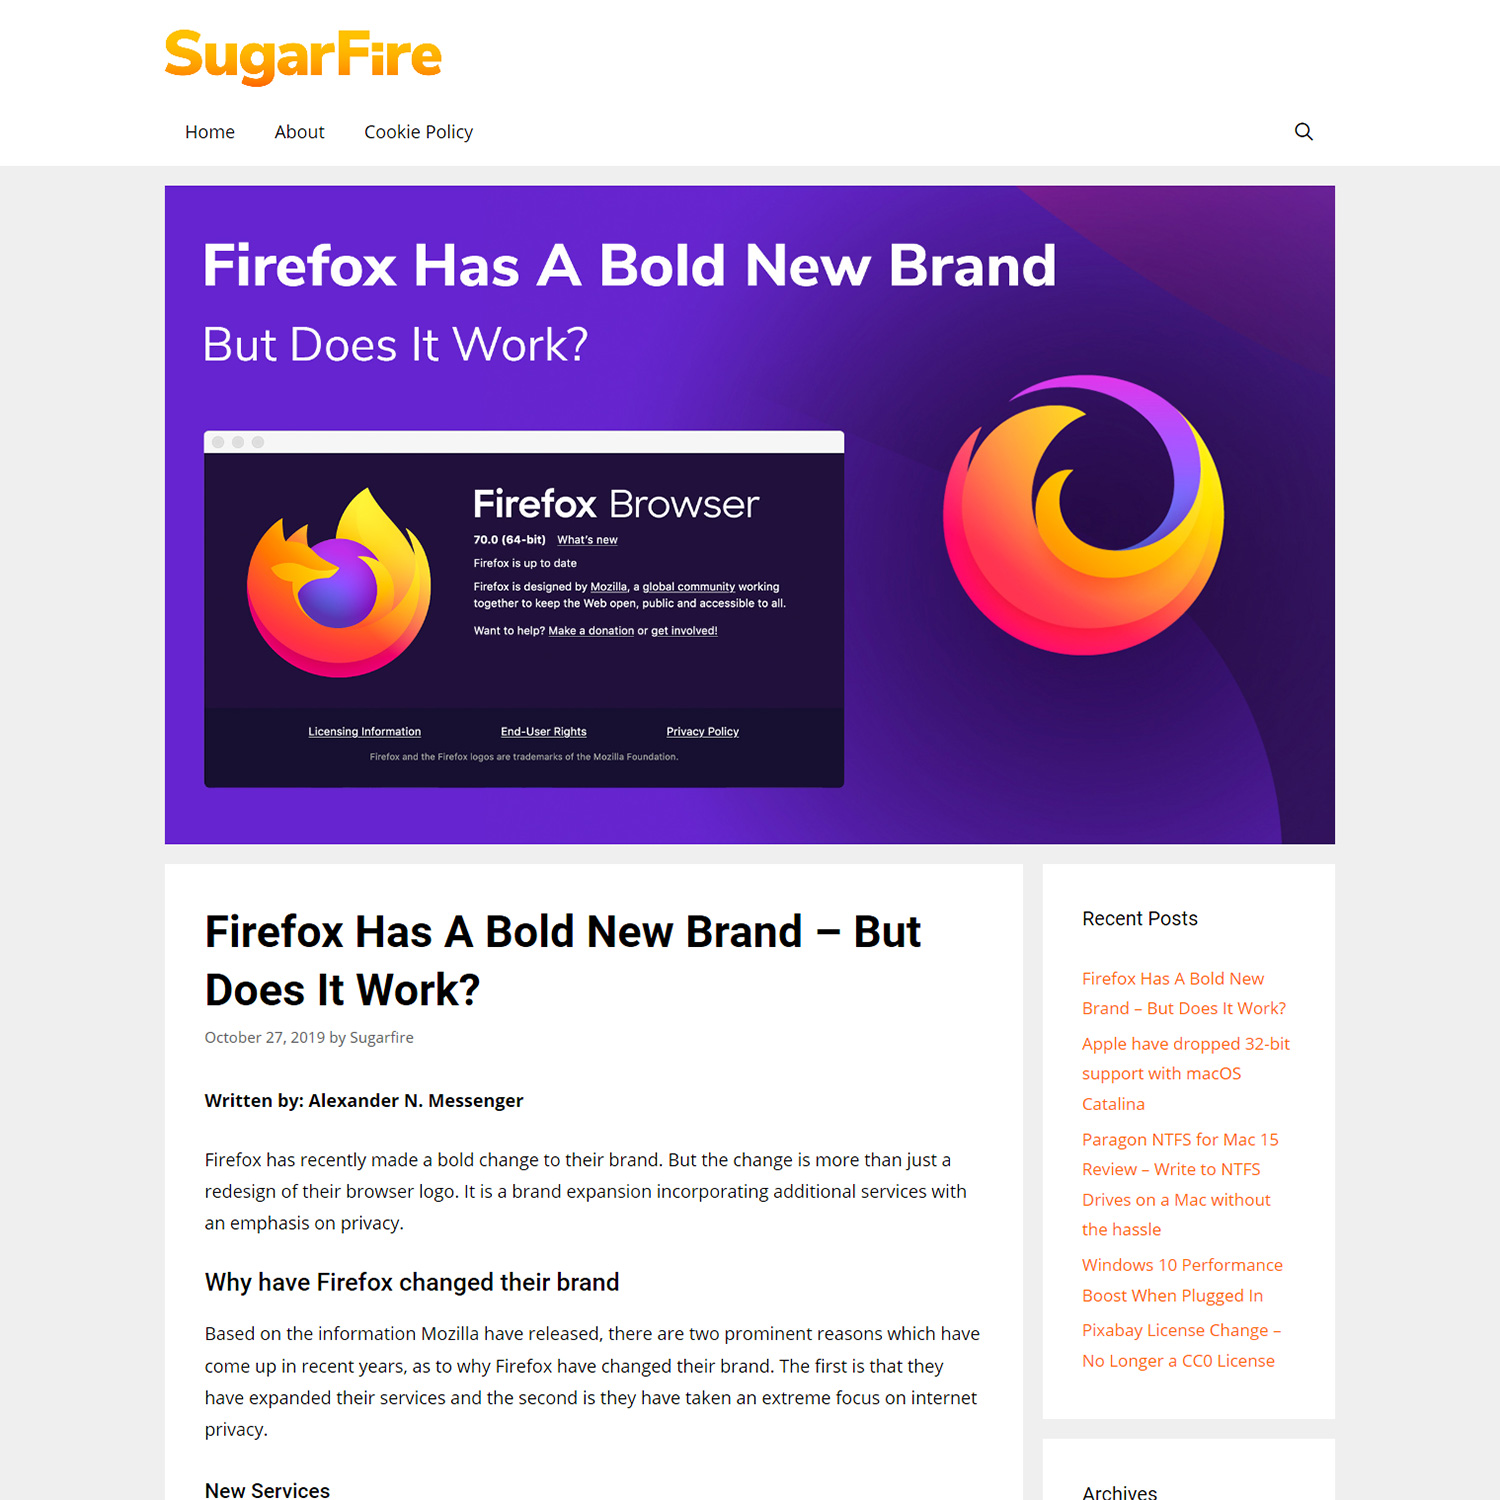 Image of Firefox has a Bold New Brand article on the SugarFire.net website